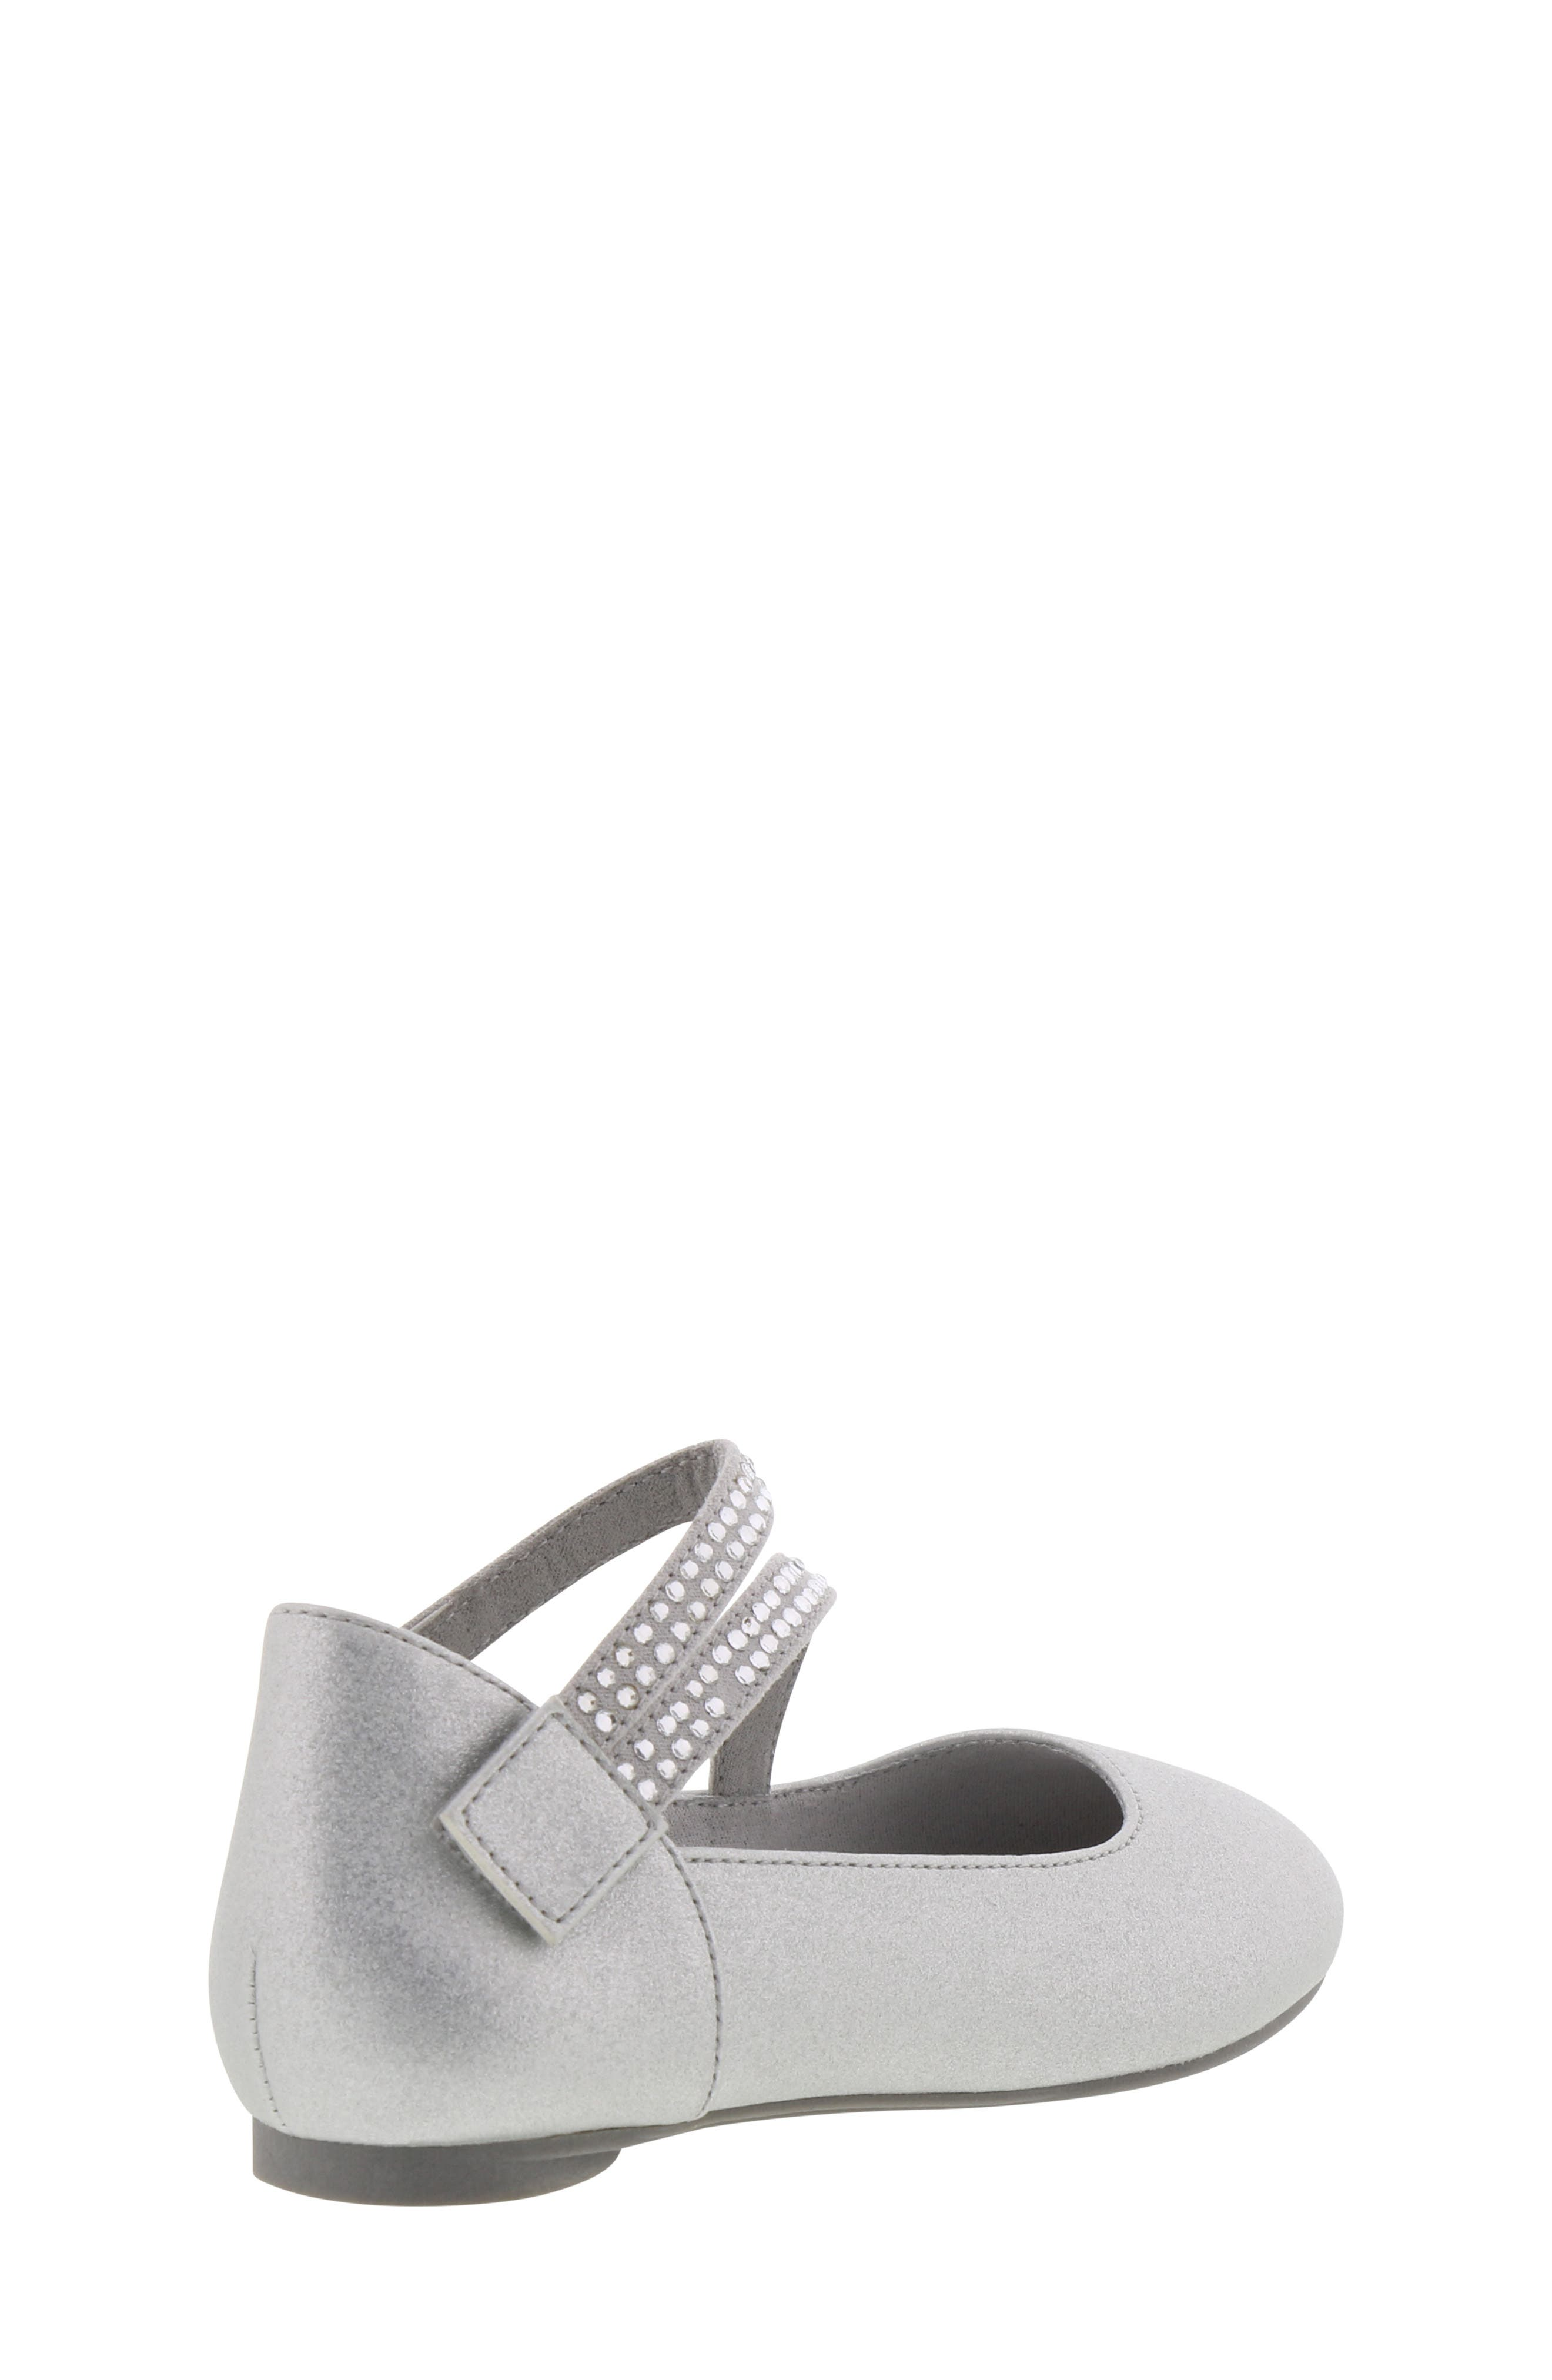 REACTION KENNETH COLE, Tap Lily-T Embellished Flat, Alternate thumbnail 2, color, SILVER